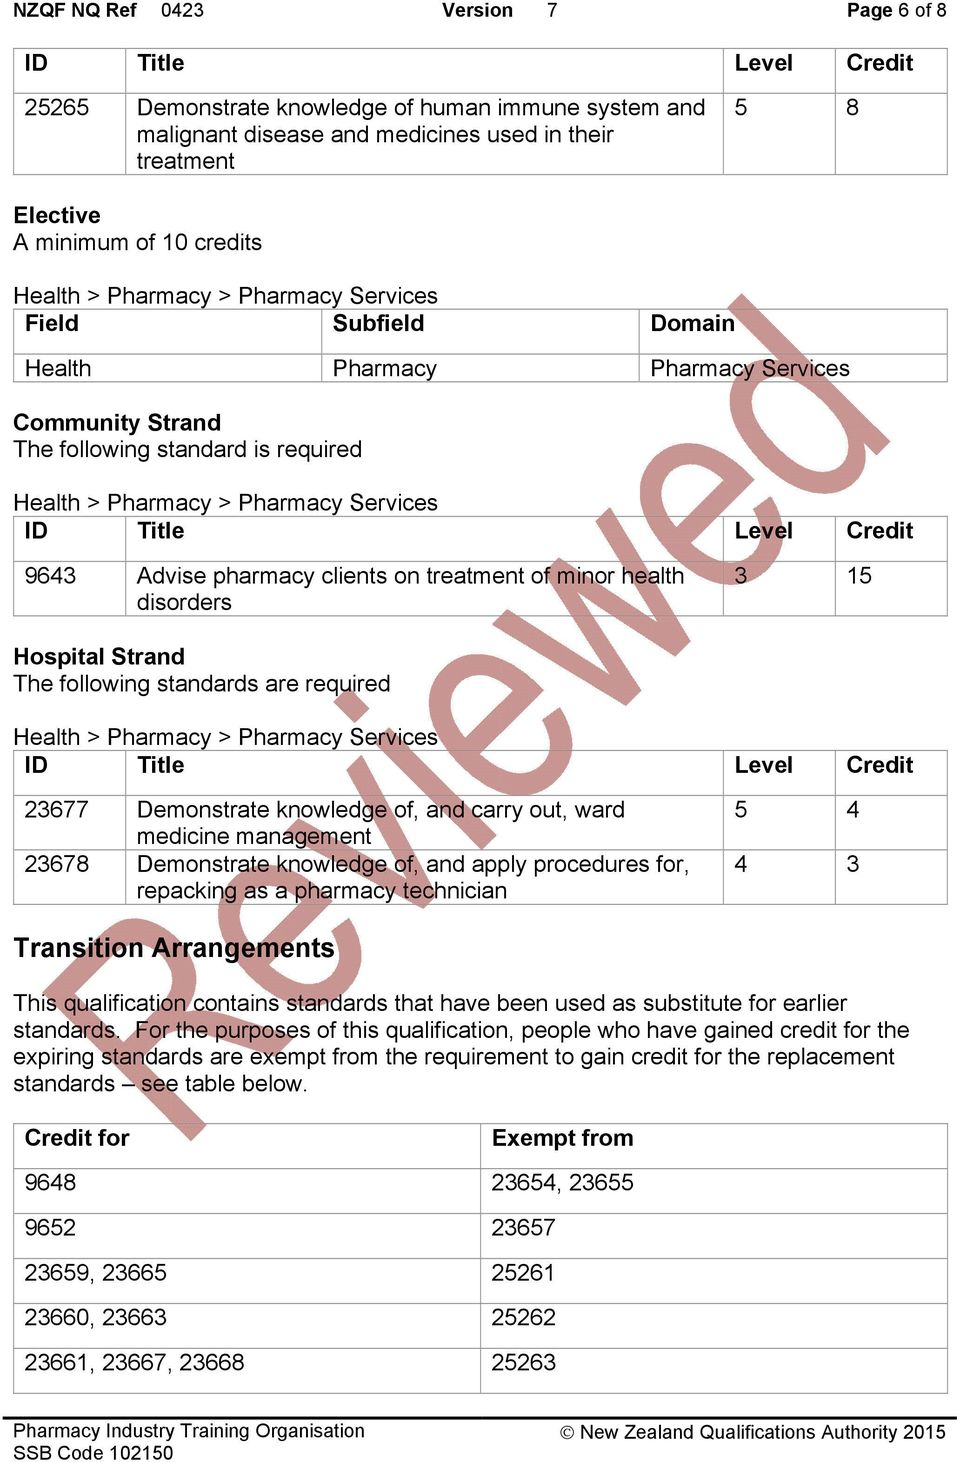 Title Level Credit 9643 Advise pharmacy clients on treatment of minor health disorders 3 15 Hospital Strand The following standards are required Health > Pharmacy > Pharmacy Services ID Title Level